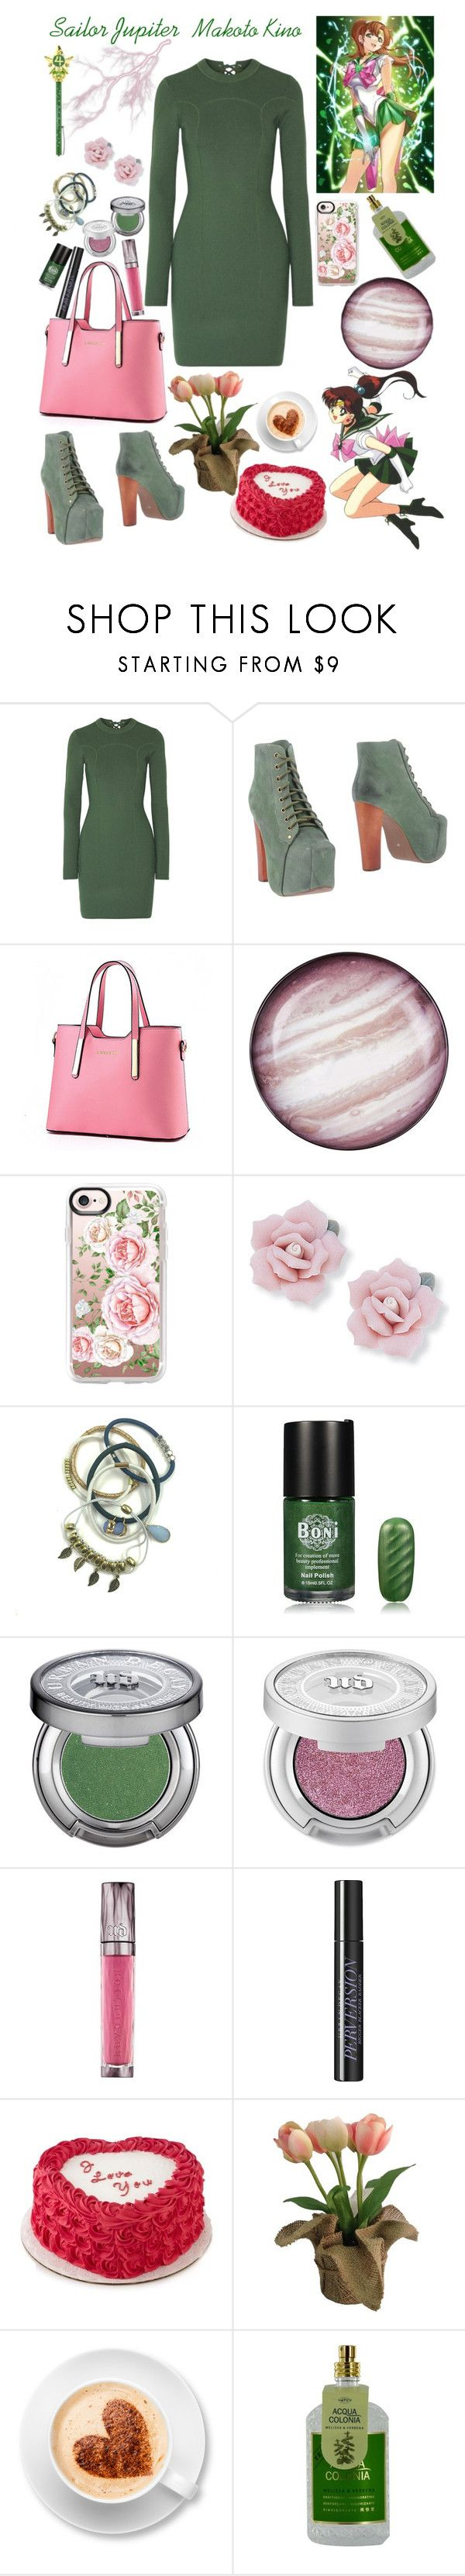 """""""Sailor Jupiter / Makoto Kino"""" by lexisamskywalker on Polyvore featuring 3.1 Phillip Lim, Jeffrey Campbell, Seletti, Casetify, Palm Beach Jewelry, Mixit, Urban Decay, SONOMA Goods for Life and 4711"""